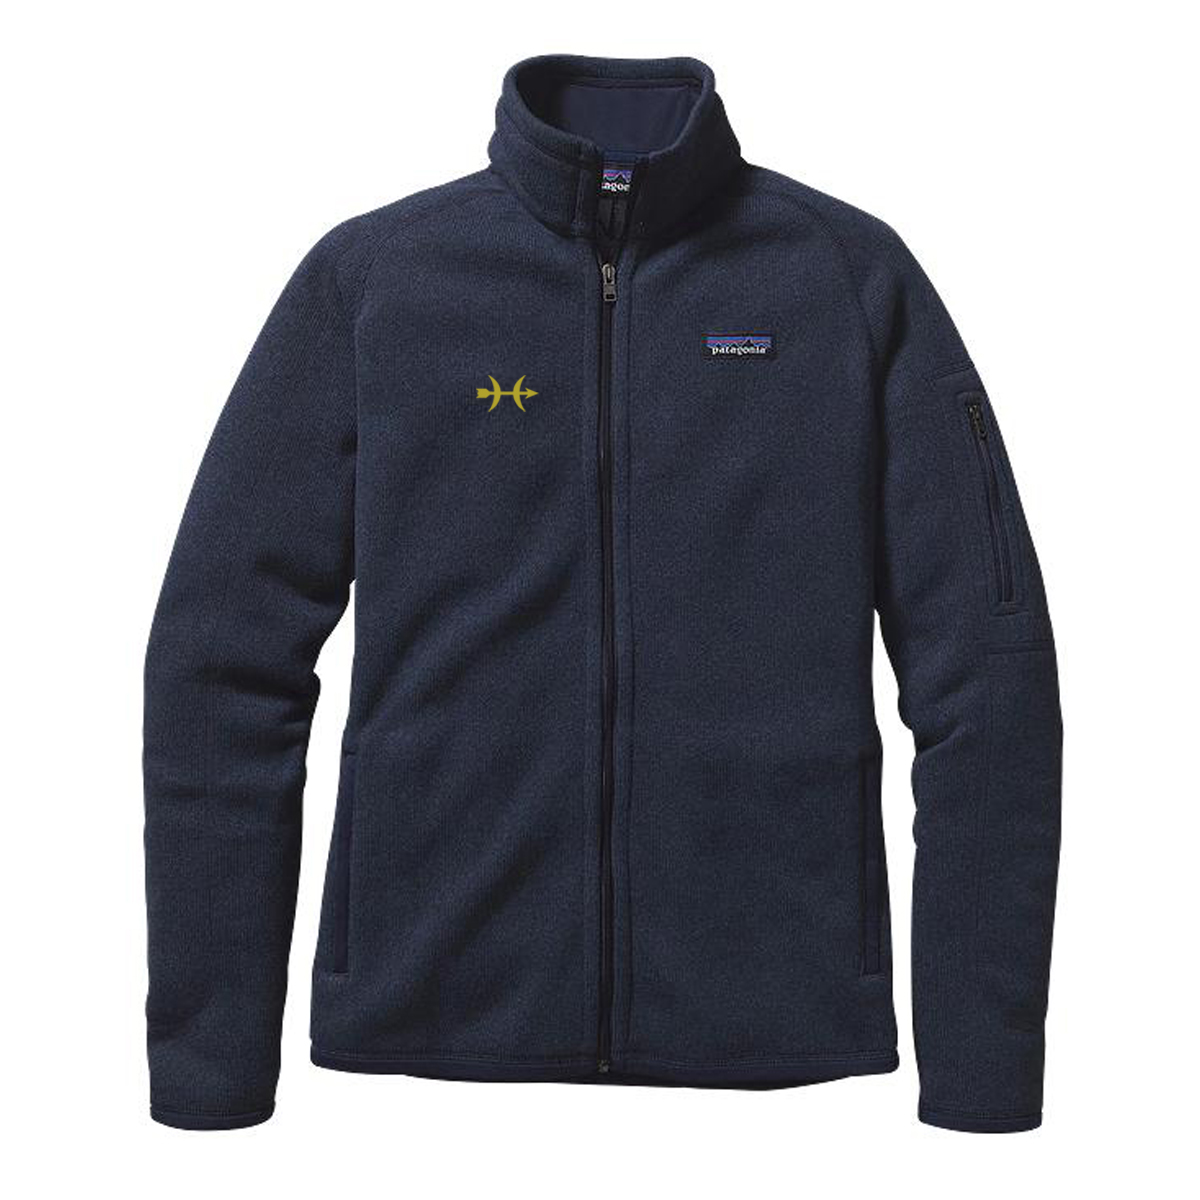 Hunt Yachts- W's Patagonia Better Sweater Jacket